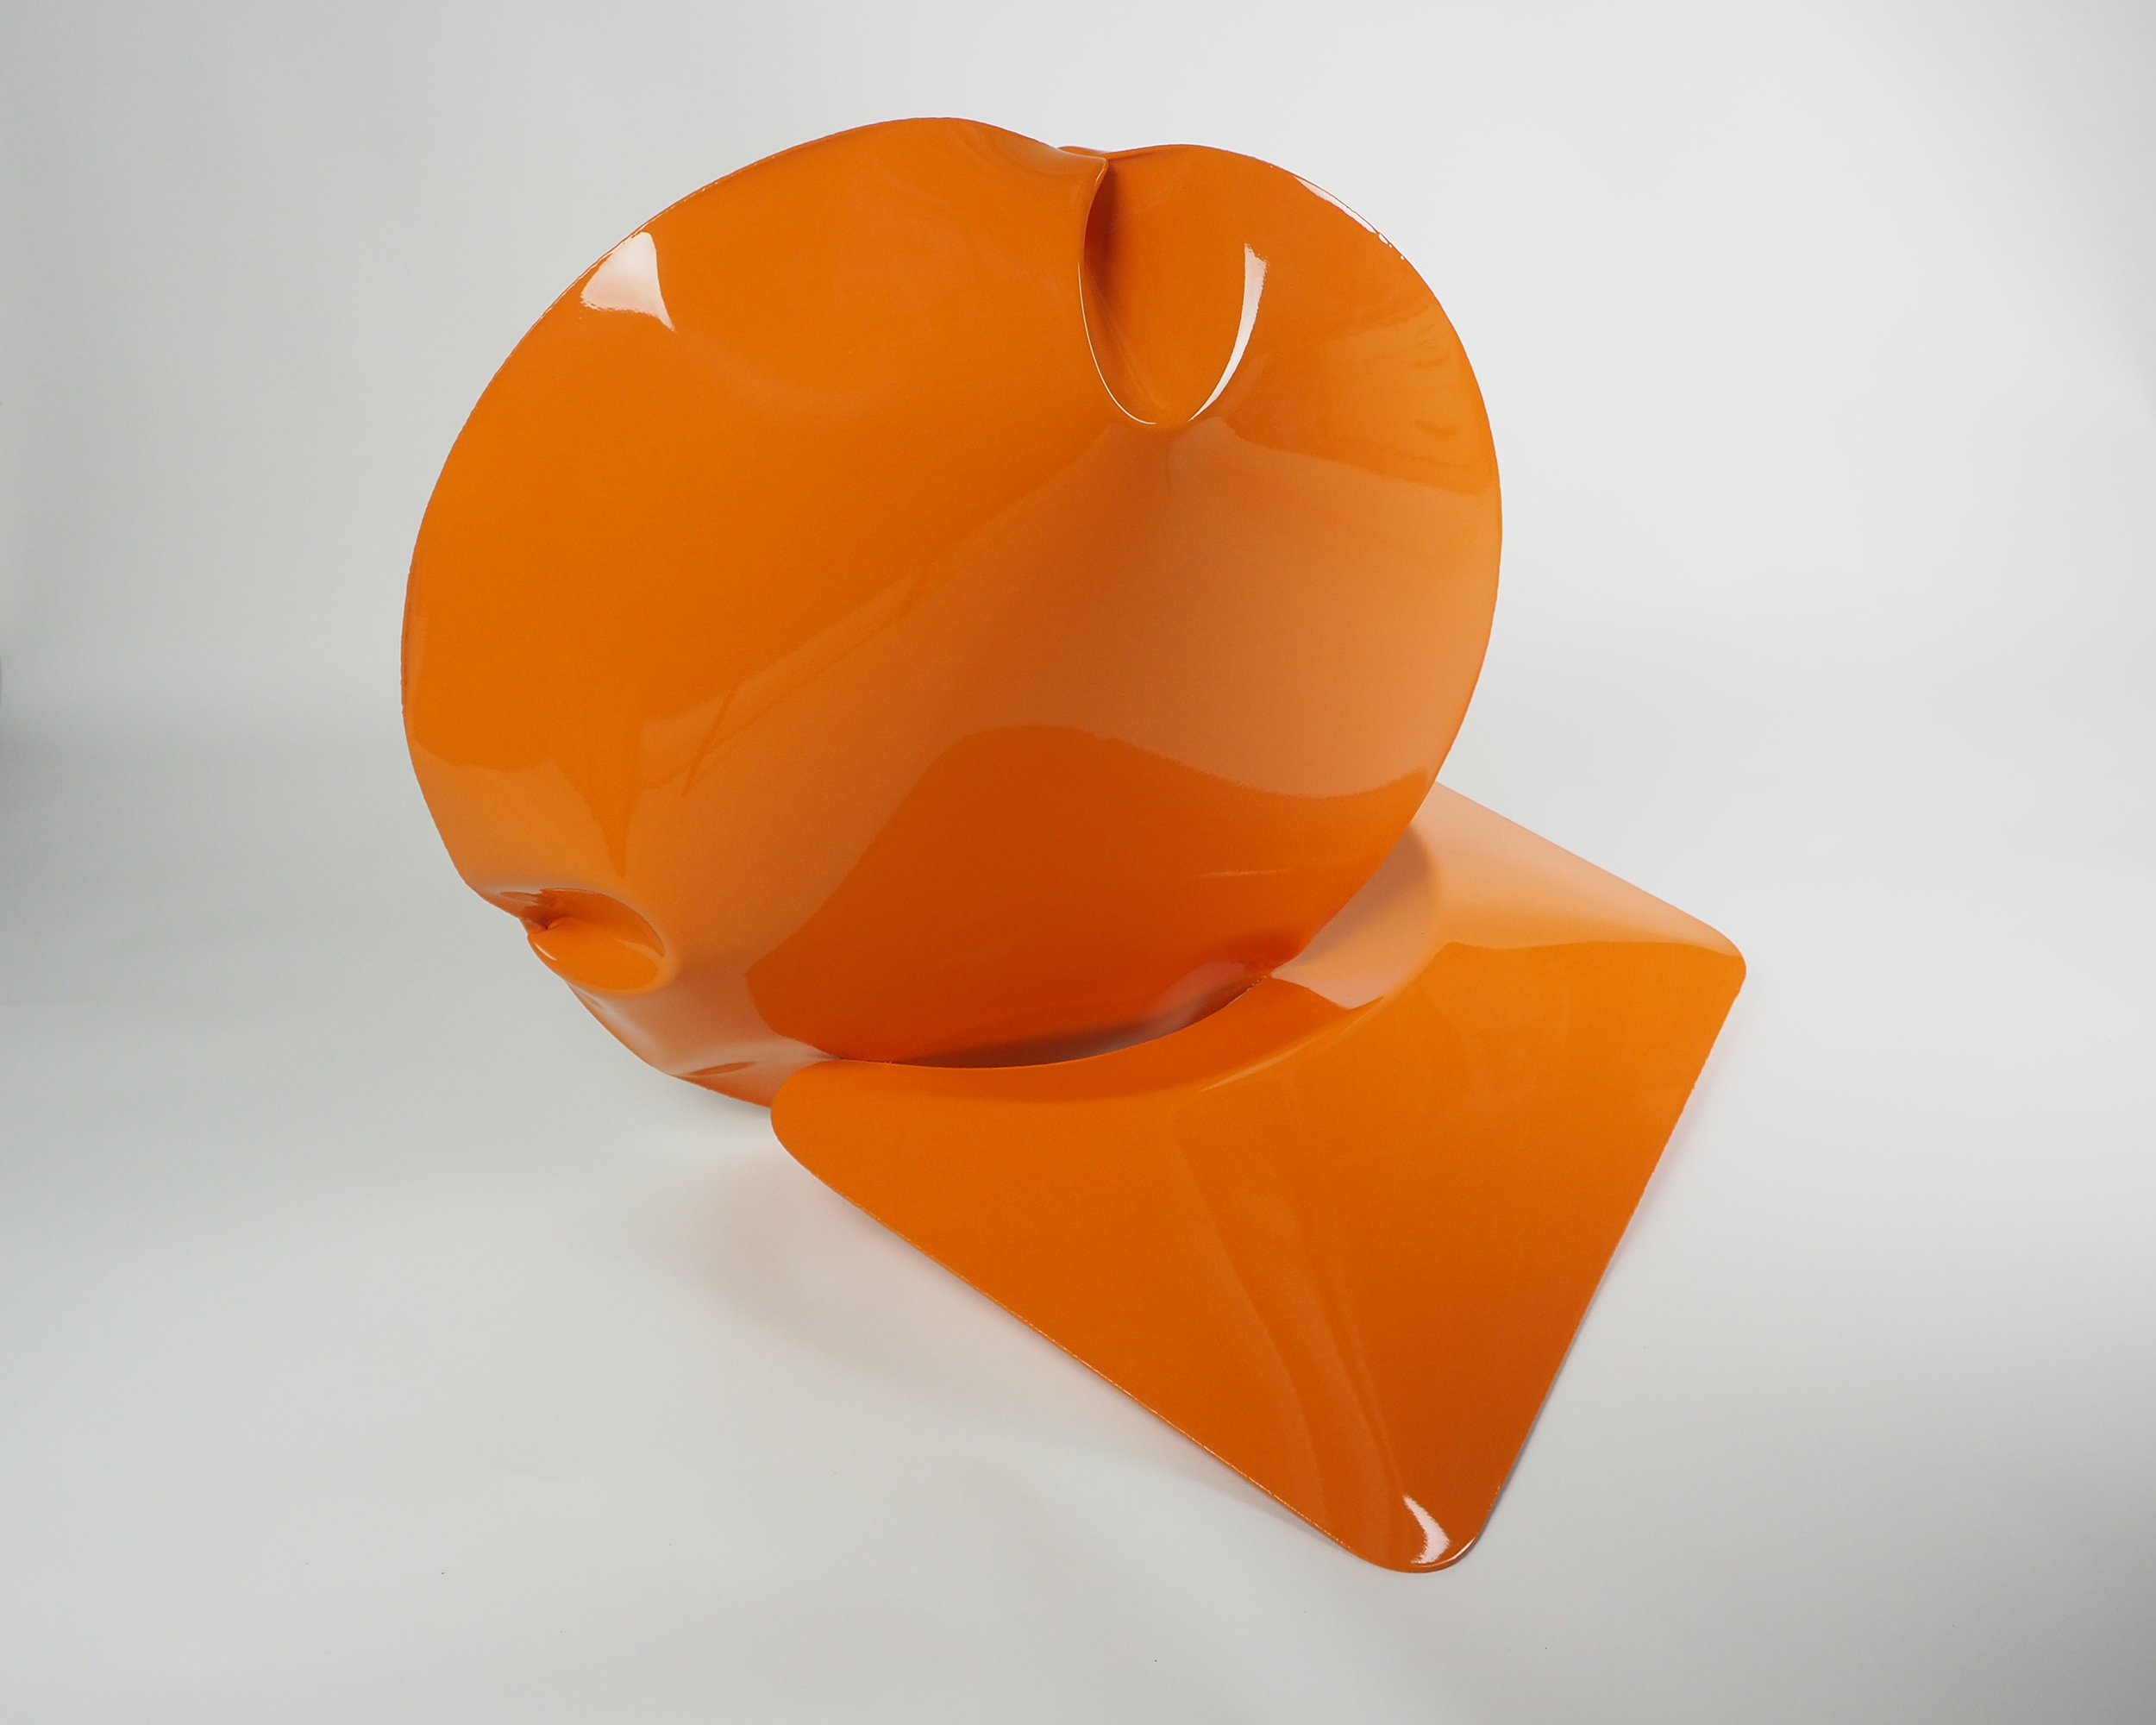 Two Act Performance in Orange 2015  Air formed welded steel and epoxy paint by Braddon Snape